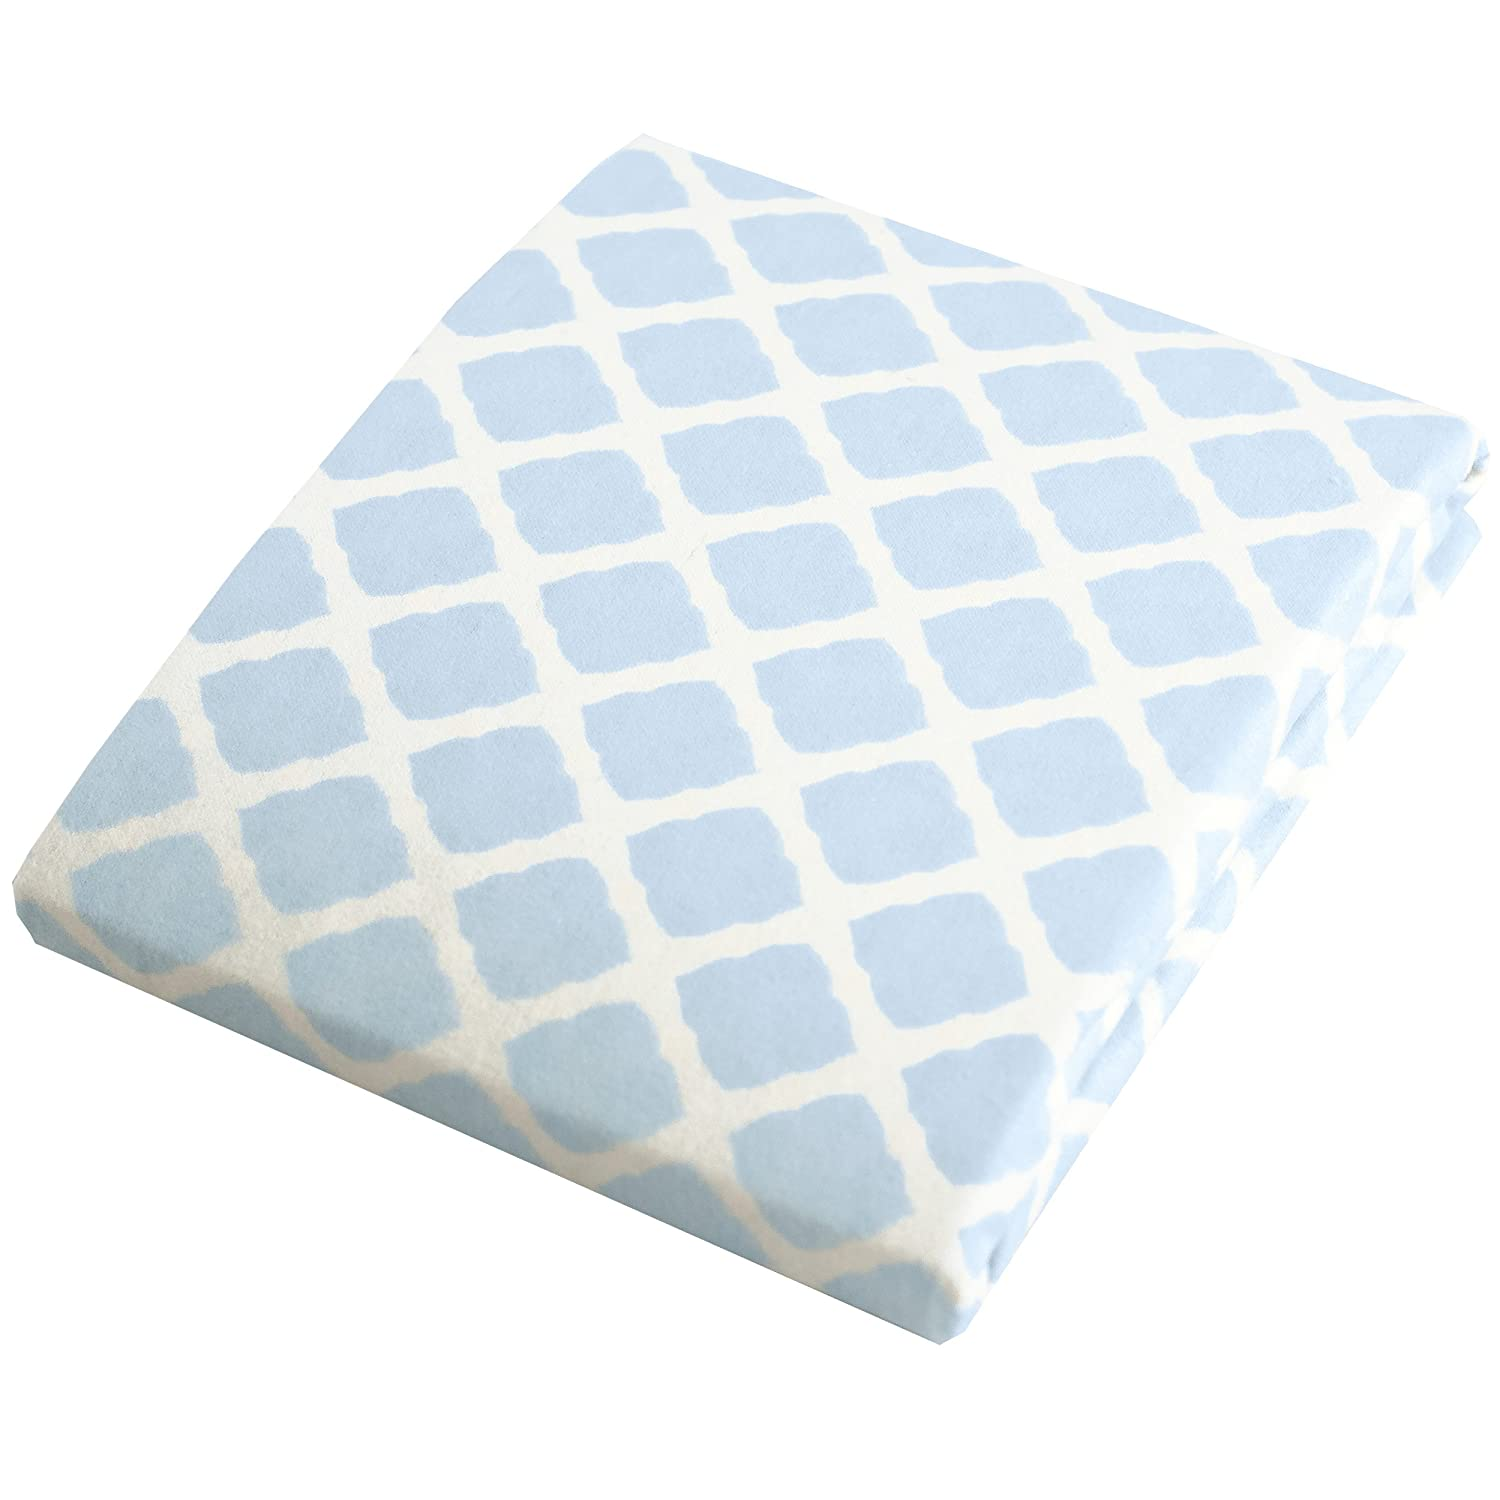 Kushies Changing Pad Cover for 1 pad, 100% breathable cotton, Made in Canada, Blue Lattice Kushies Baby S340-585